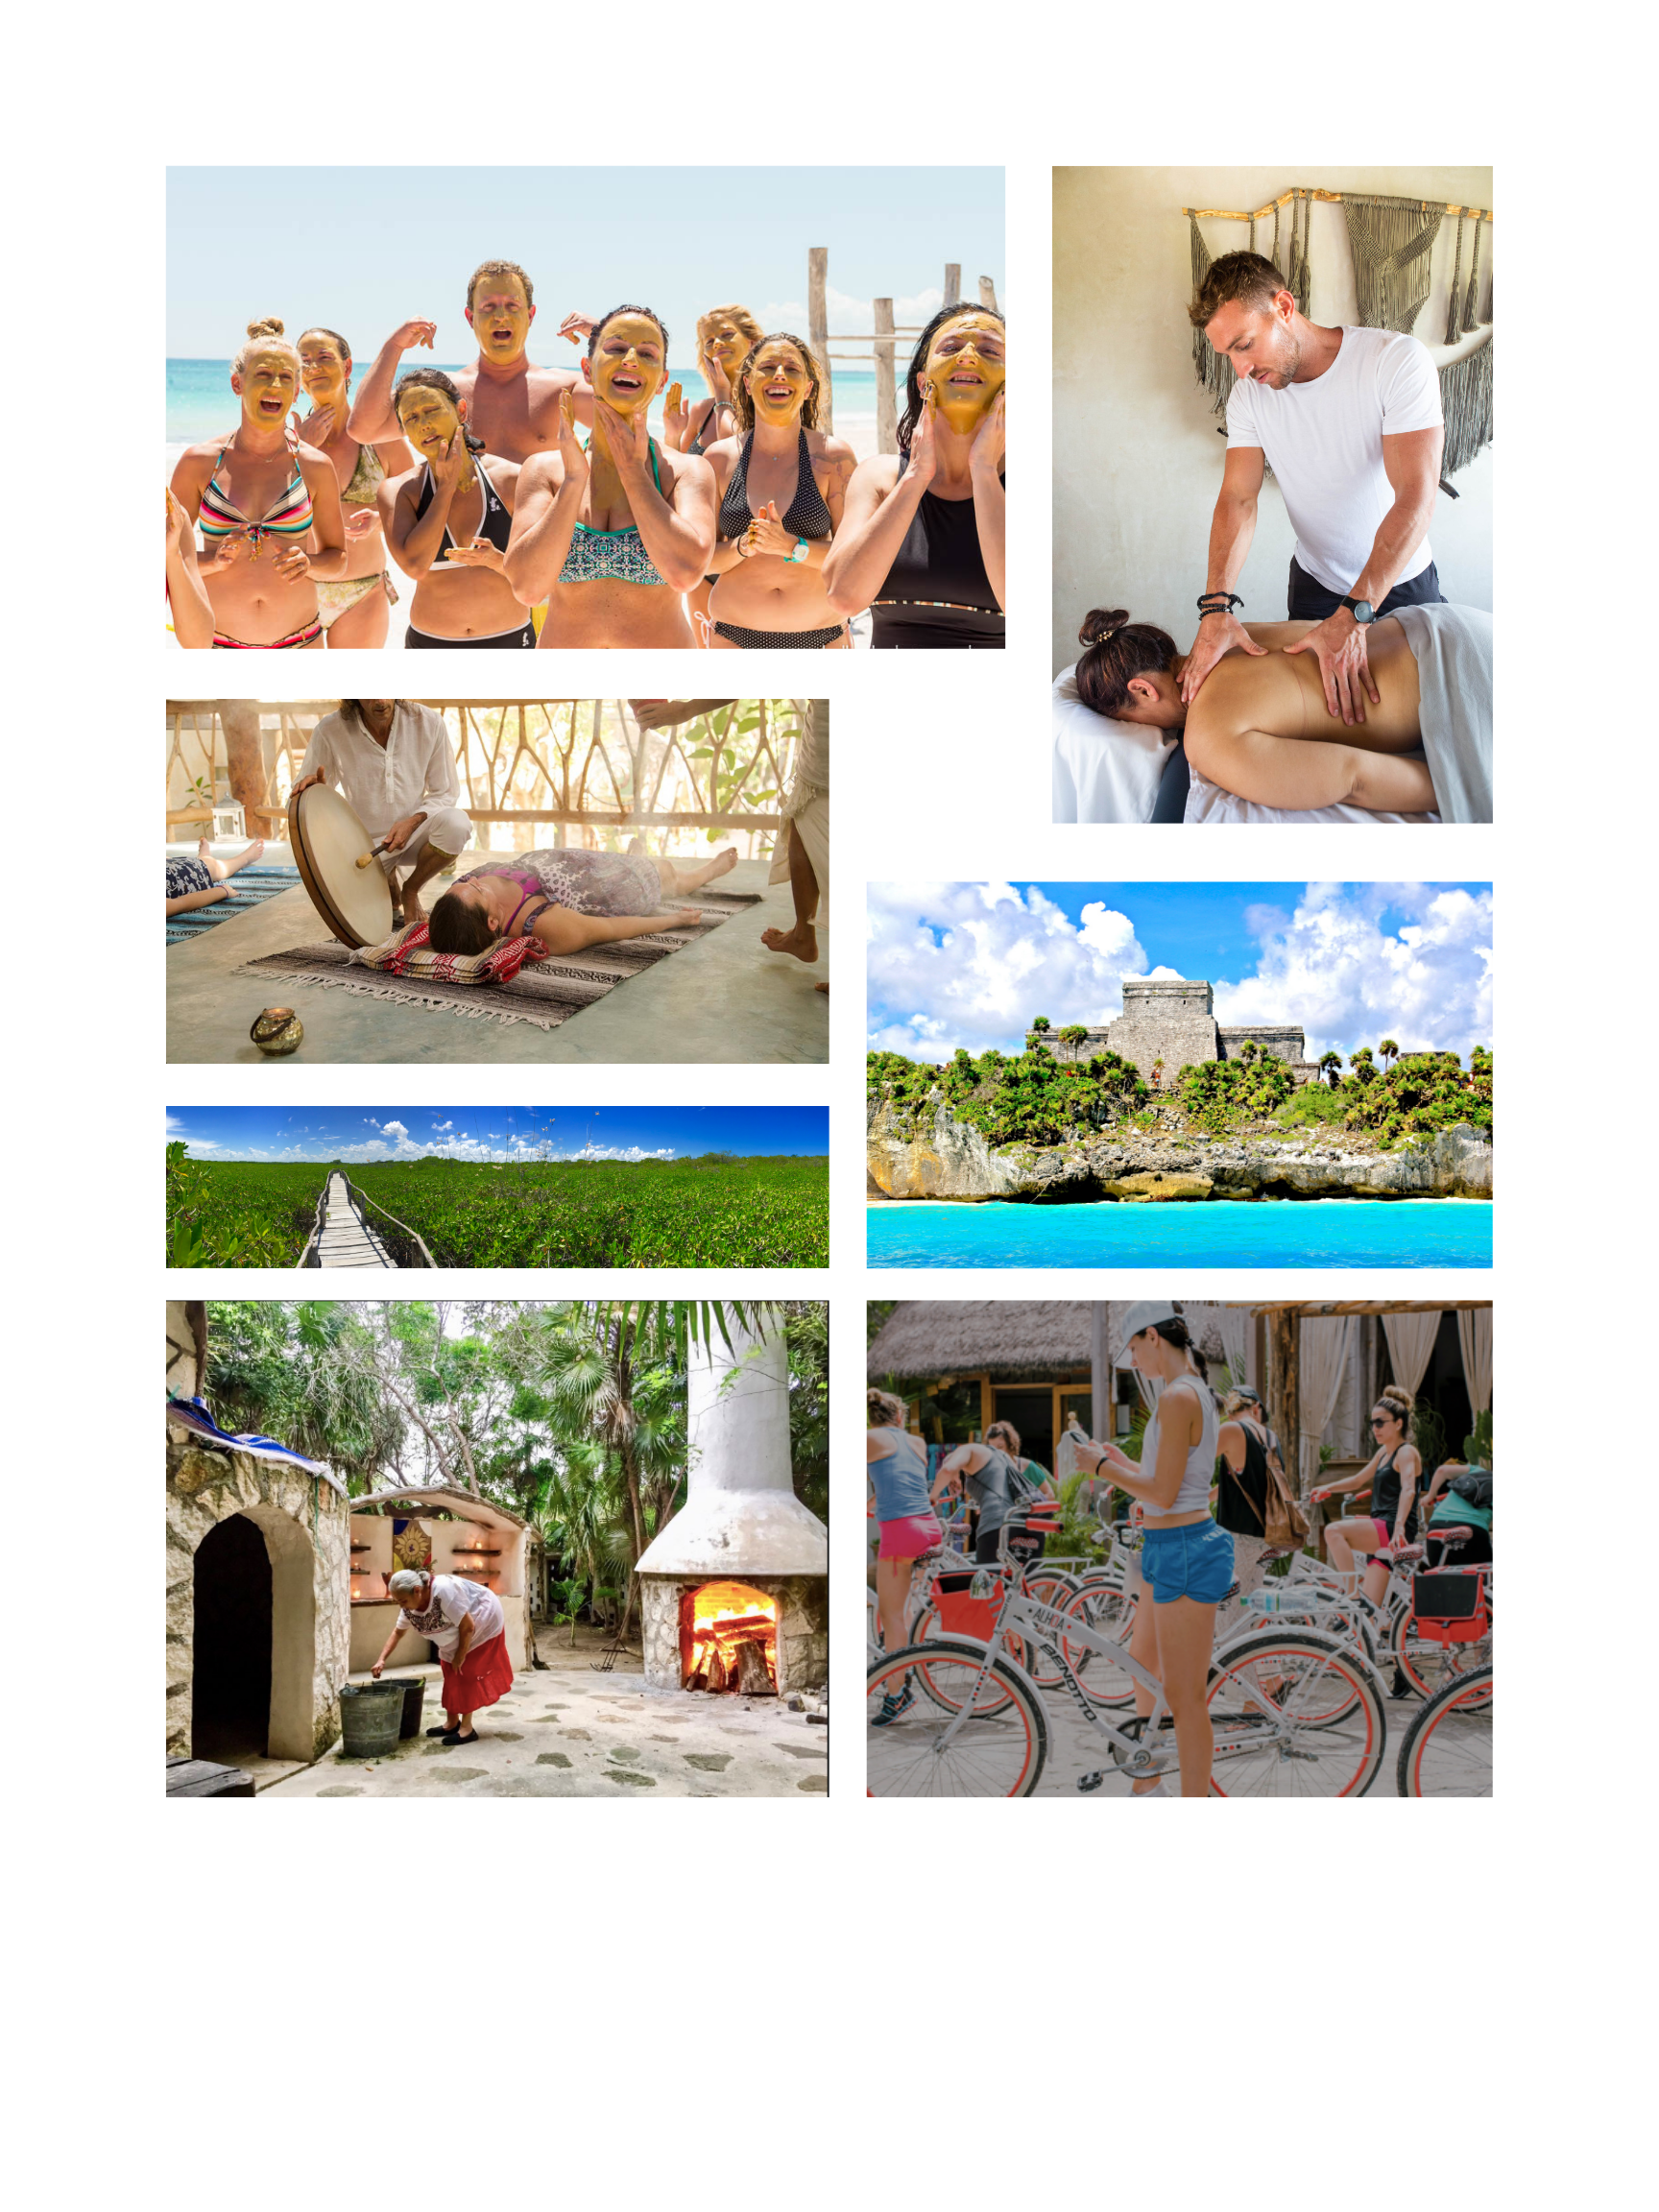 Package bundles - Package A$100/pp Pre Book One MASSAGE per person, and get our MAYAN CLAY MEDITATION for just $10, per personPackage B$100/pp (A Mayan sweat lodge) & MAYAN CLAY MEDITATIONPackage C$145 pp Snorkling at Grande Cenote or Bike ride to the Tulum Ruins & MASSAGE and MAYAN CLAY MEDITATION FREE!!Package D$170 pp TEMAZCAL (a Mayan sweat lodge), & and MASSAGE, and get our MAYAN CLAY MEDITATION FREE!!Package E$175 per pp COBA Ruins & a MASSAGE and get our MAYAN CLAY MEDITATION FREE!!